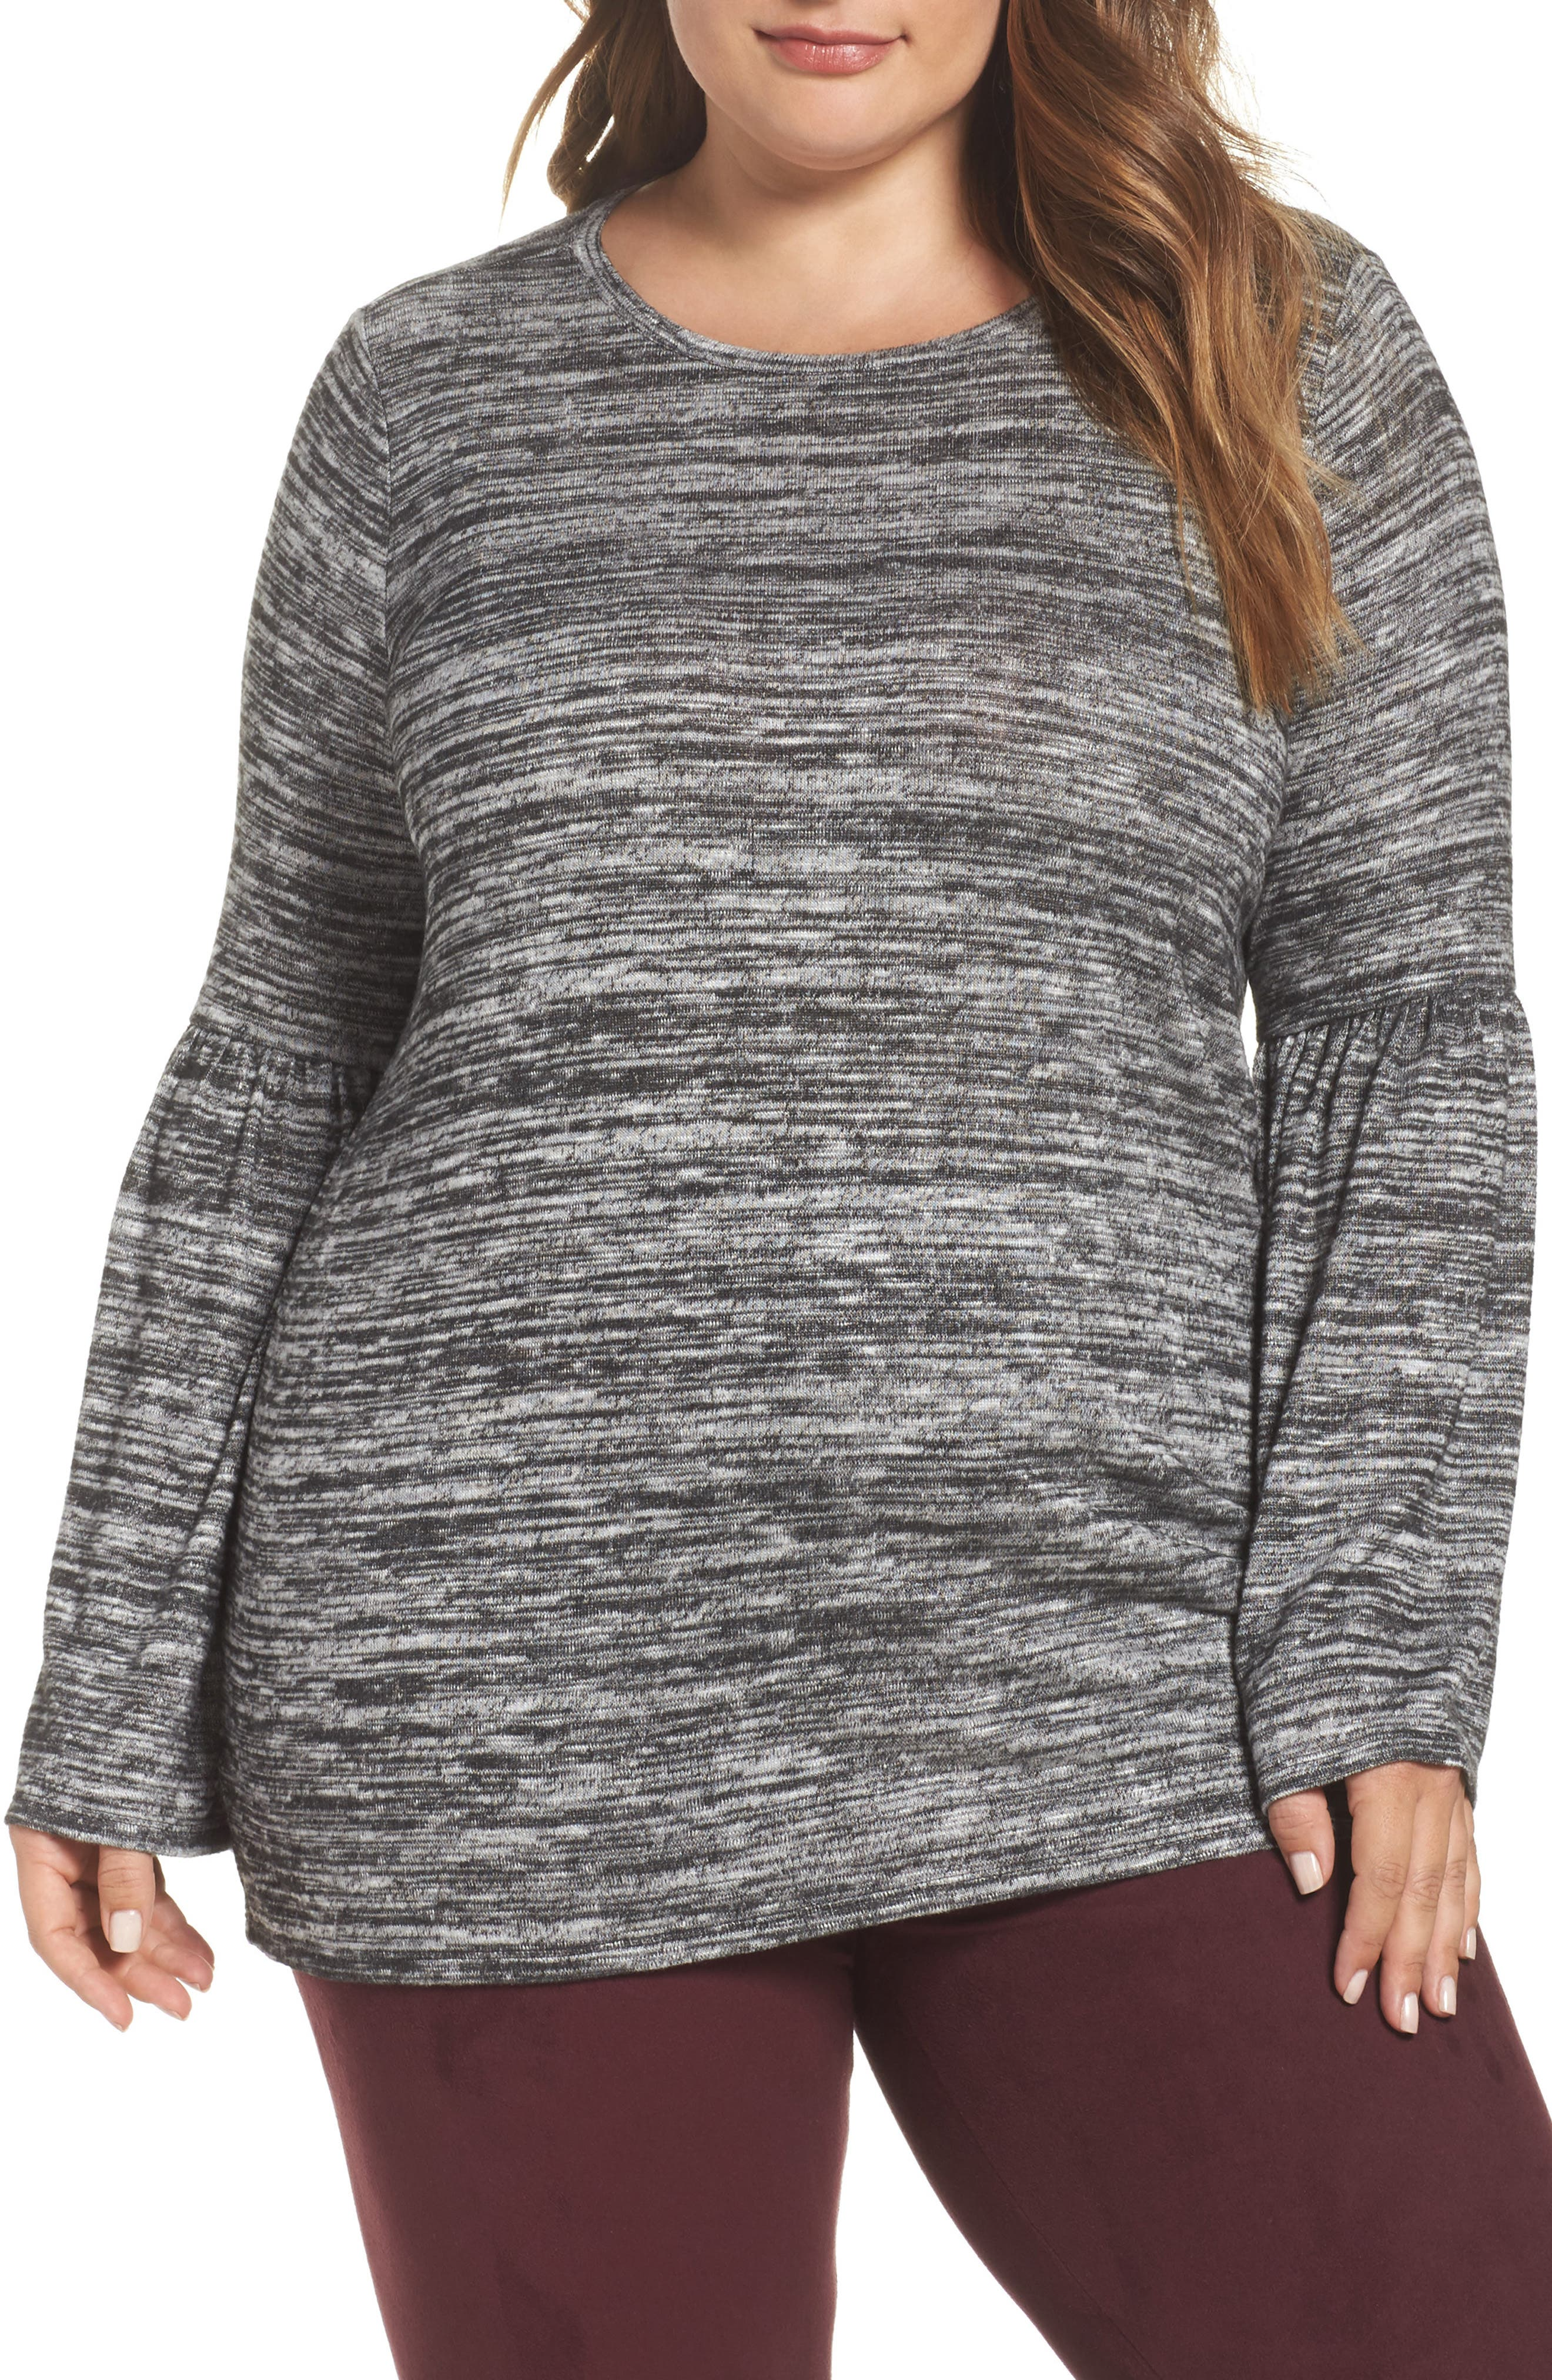 Main Image - Two by Vince Camuto Ruched Bell Sleeve Sweater (Plus Size)